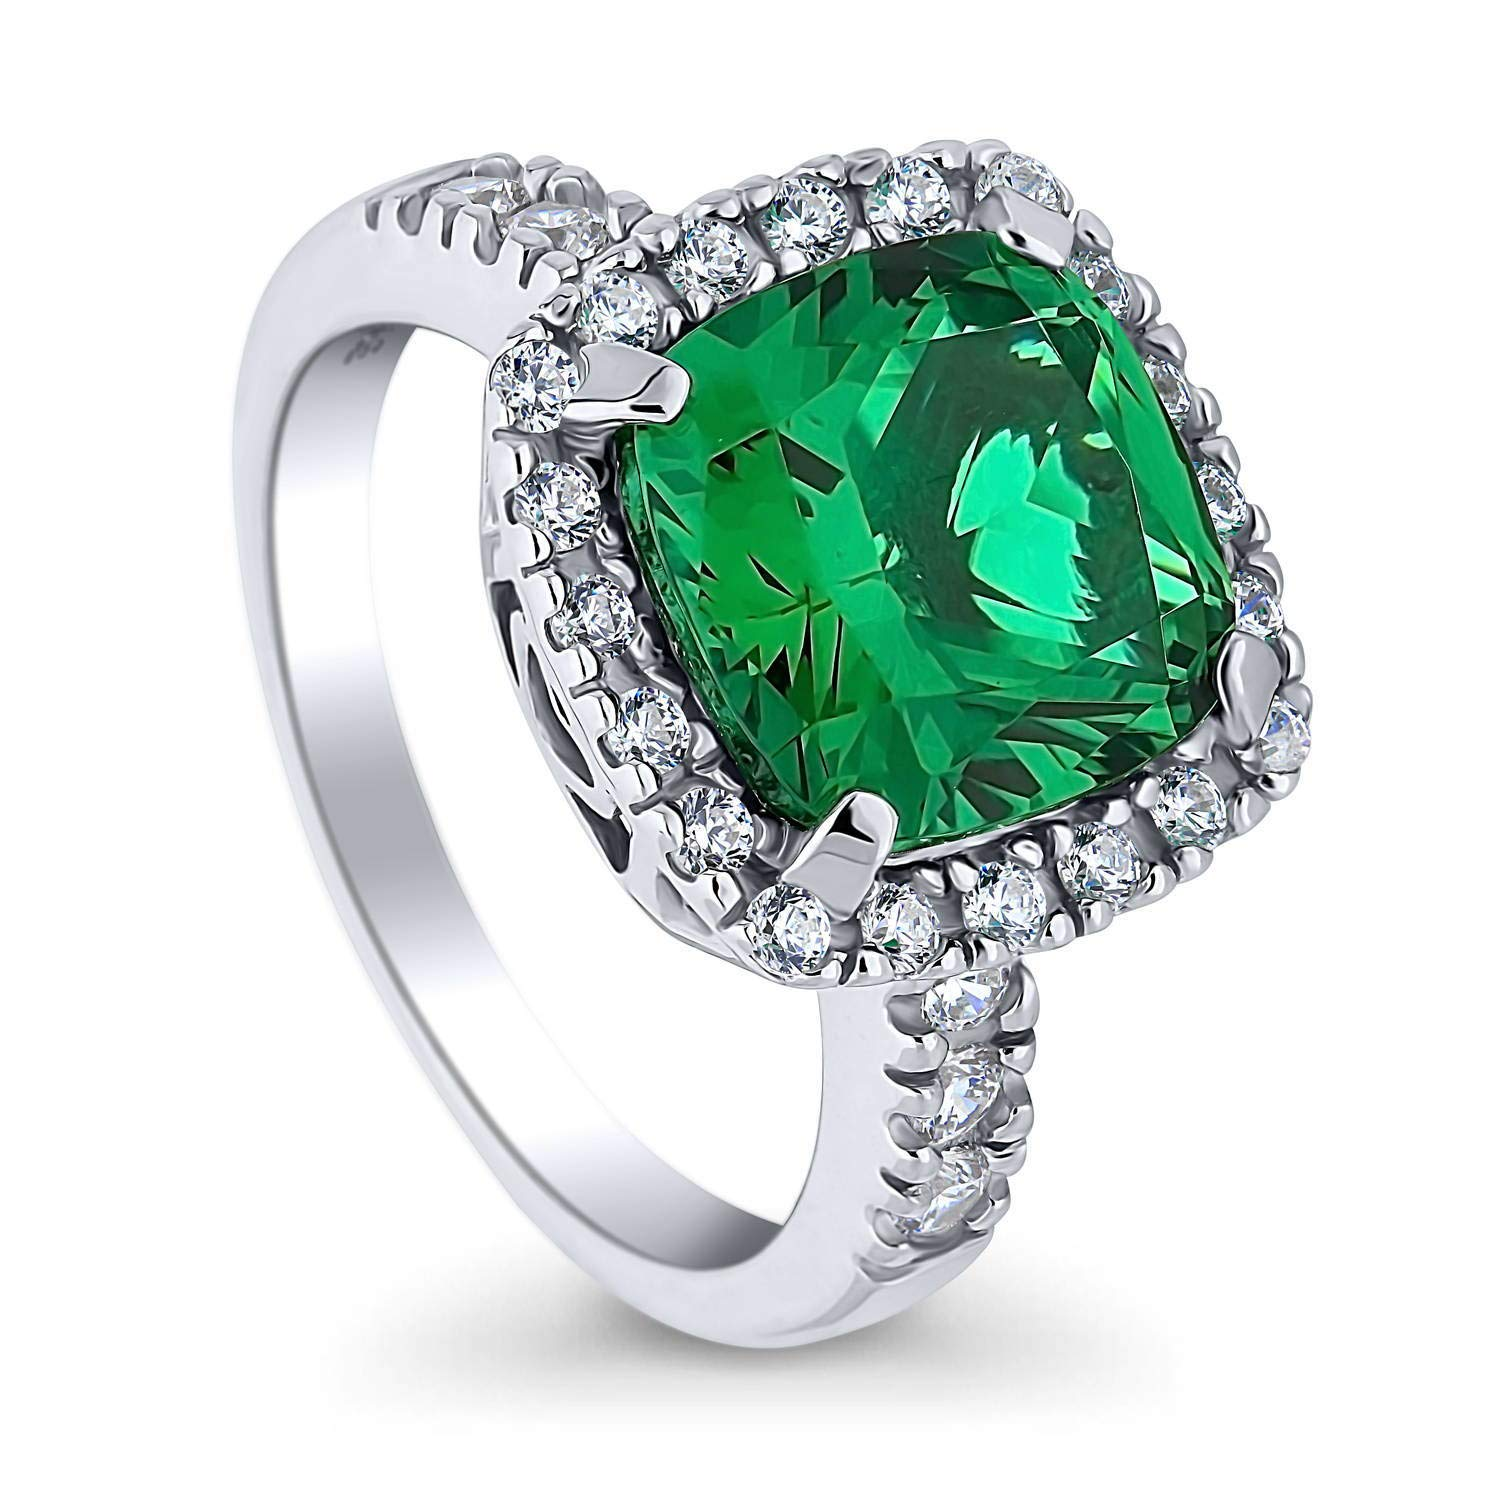 BERRICLE Rhodium Plated Sterling Silver Green Cushion Cut Cubic Zirconia CZ Statement Halo Cocktail Fashion Right Hand Ring Size 5 by BERRICLE